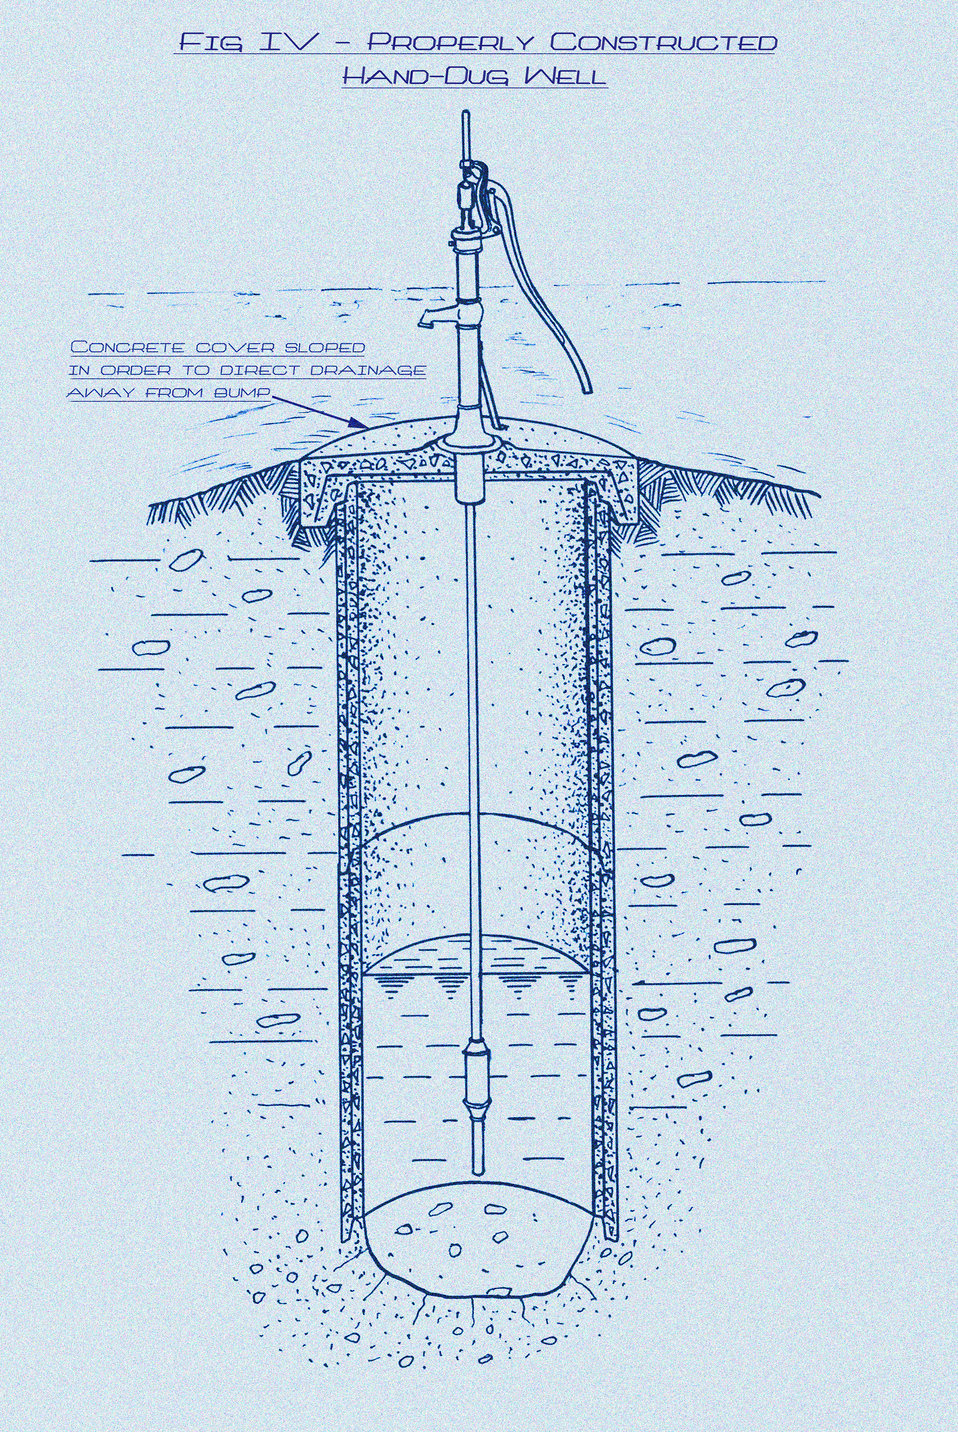 This historic diagram, which had been digitally enhanced and colorized, depicted an example of a properly constructed 'dug' type well, showi